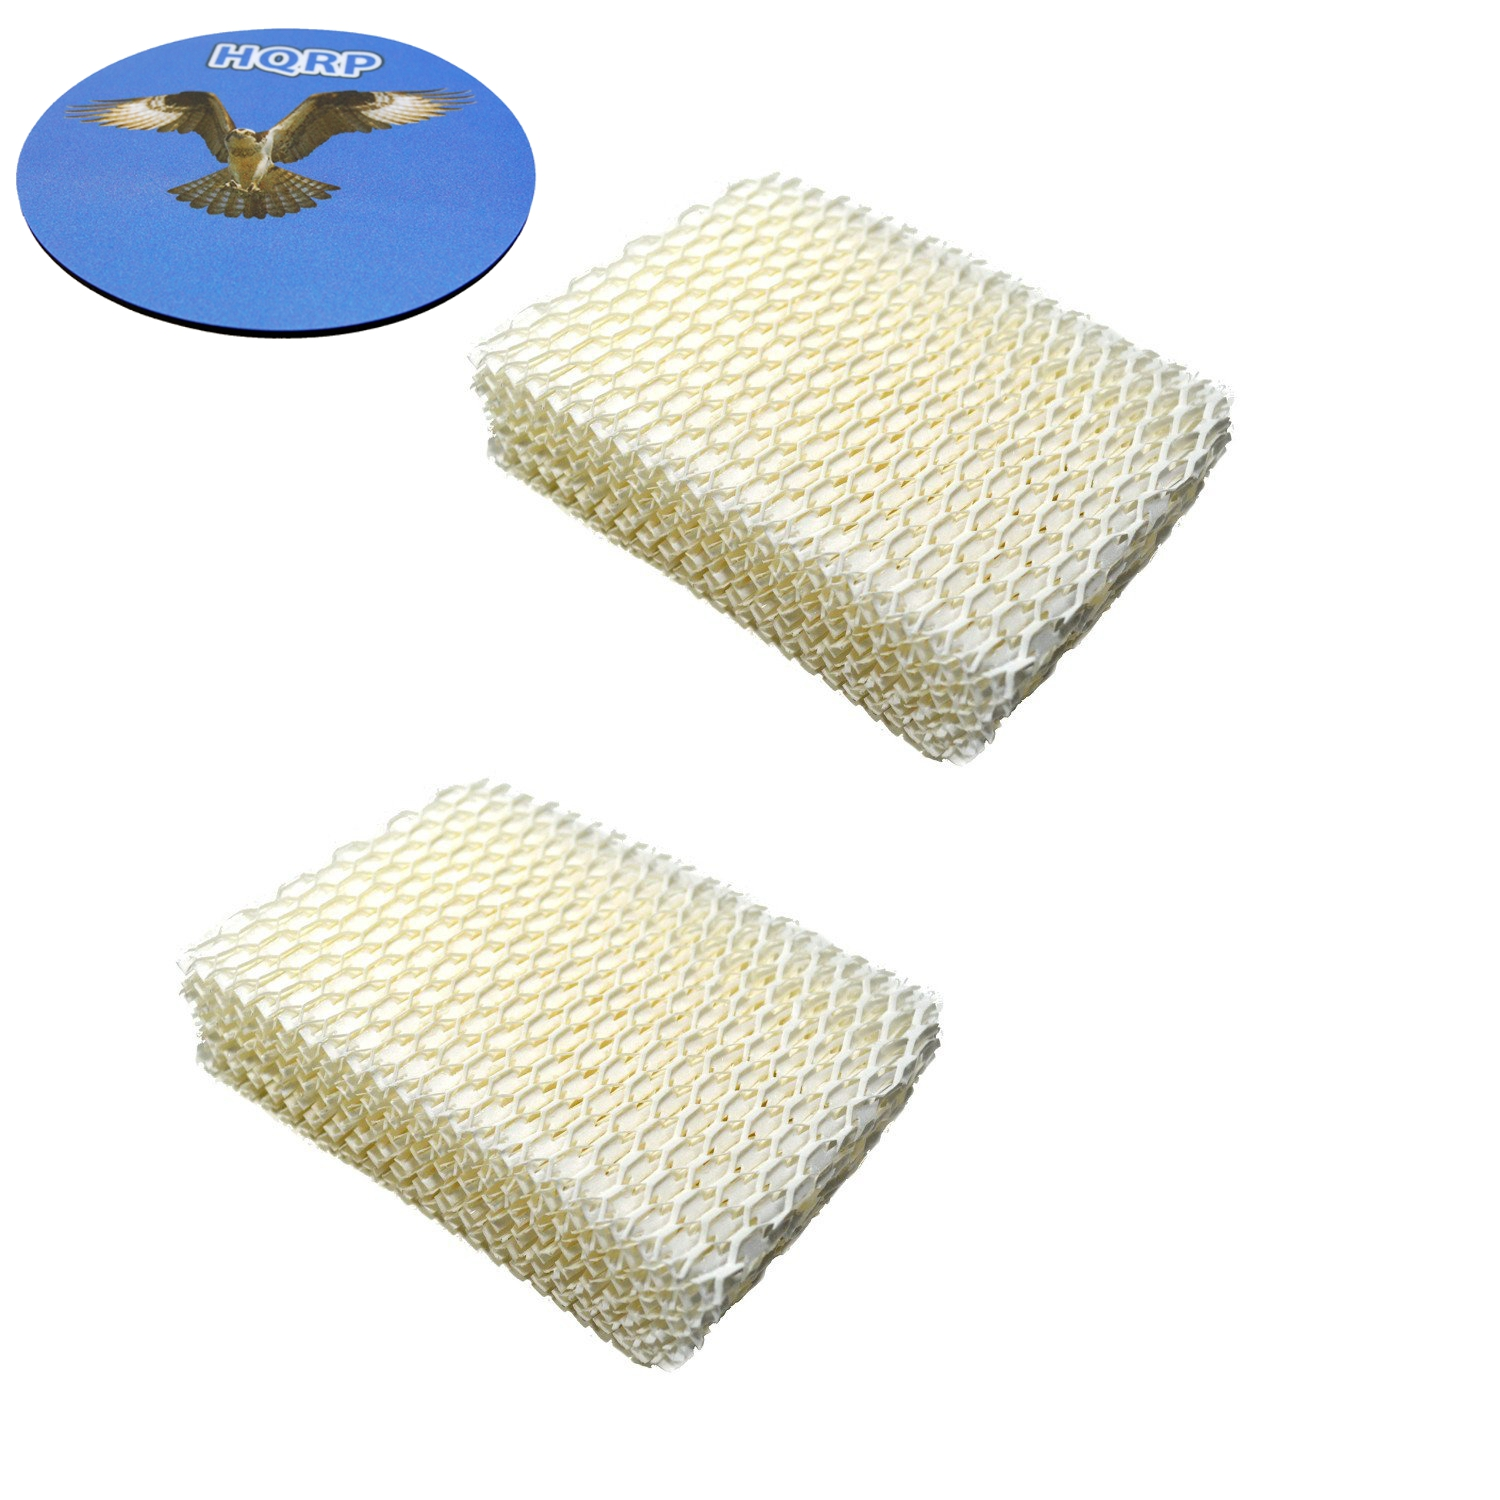 HQRP 2pack Humidifier Wick Filter for ProCare AC813 PCWF813 PCCM-832N Cool Mist Humidifier, PCWF813-24... by HQRP